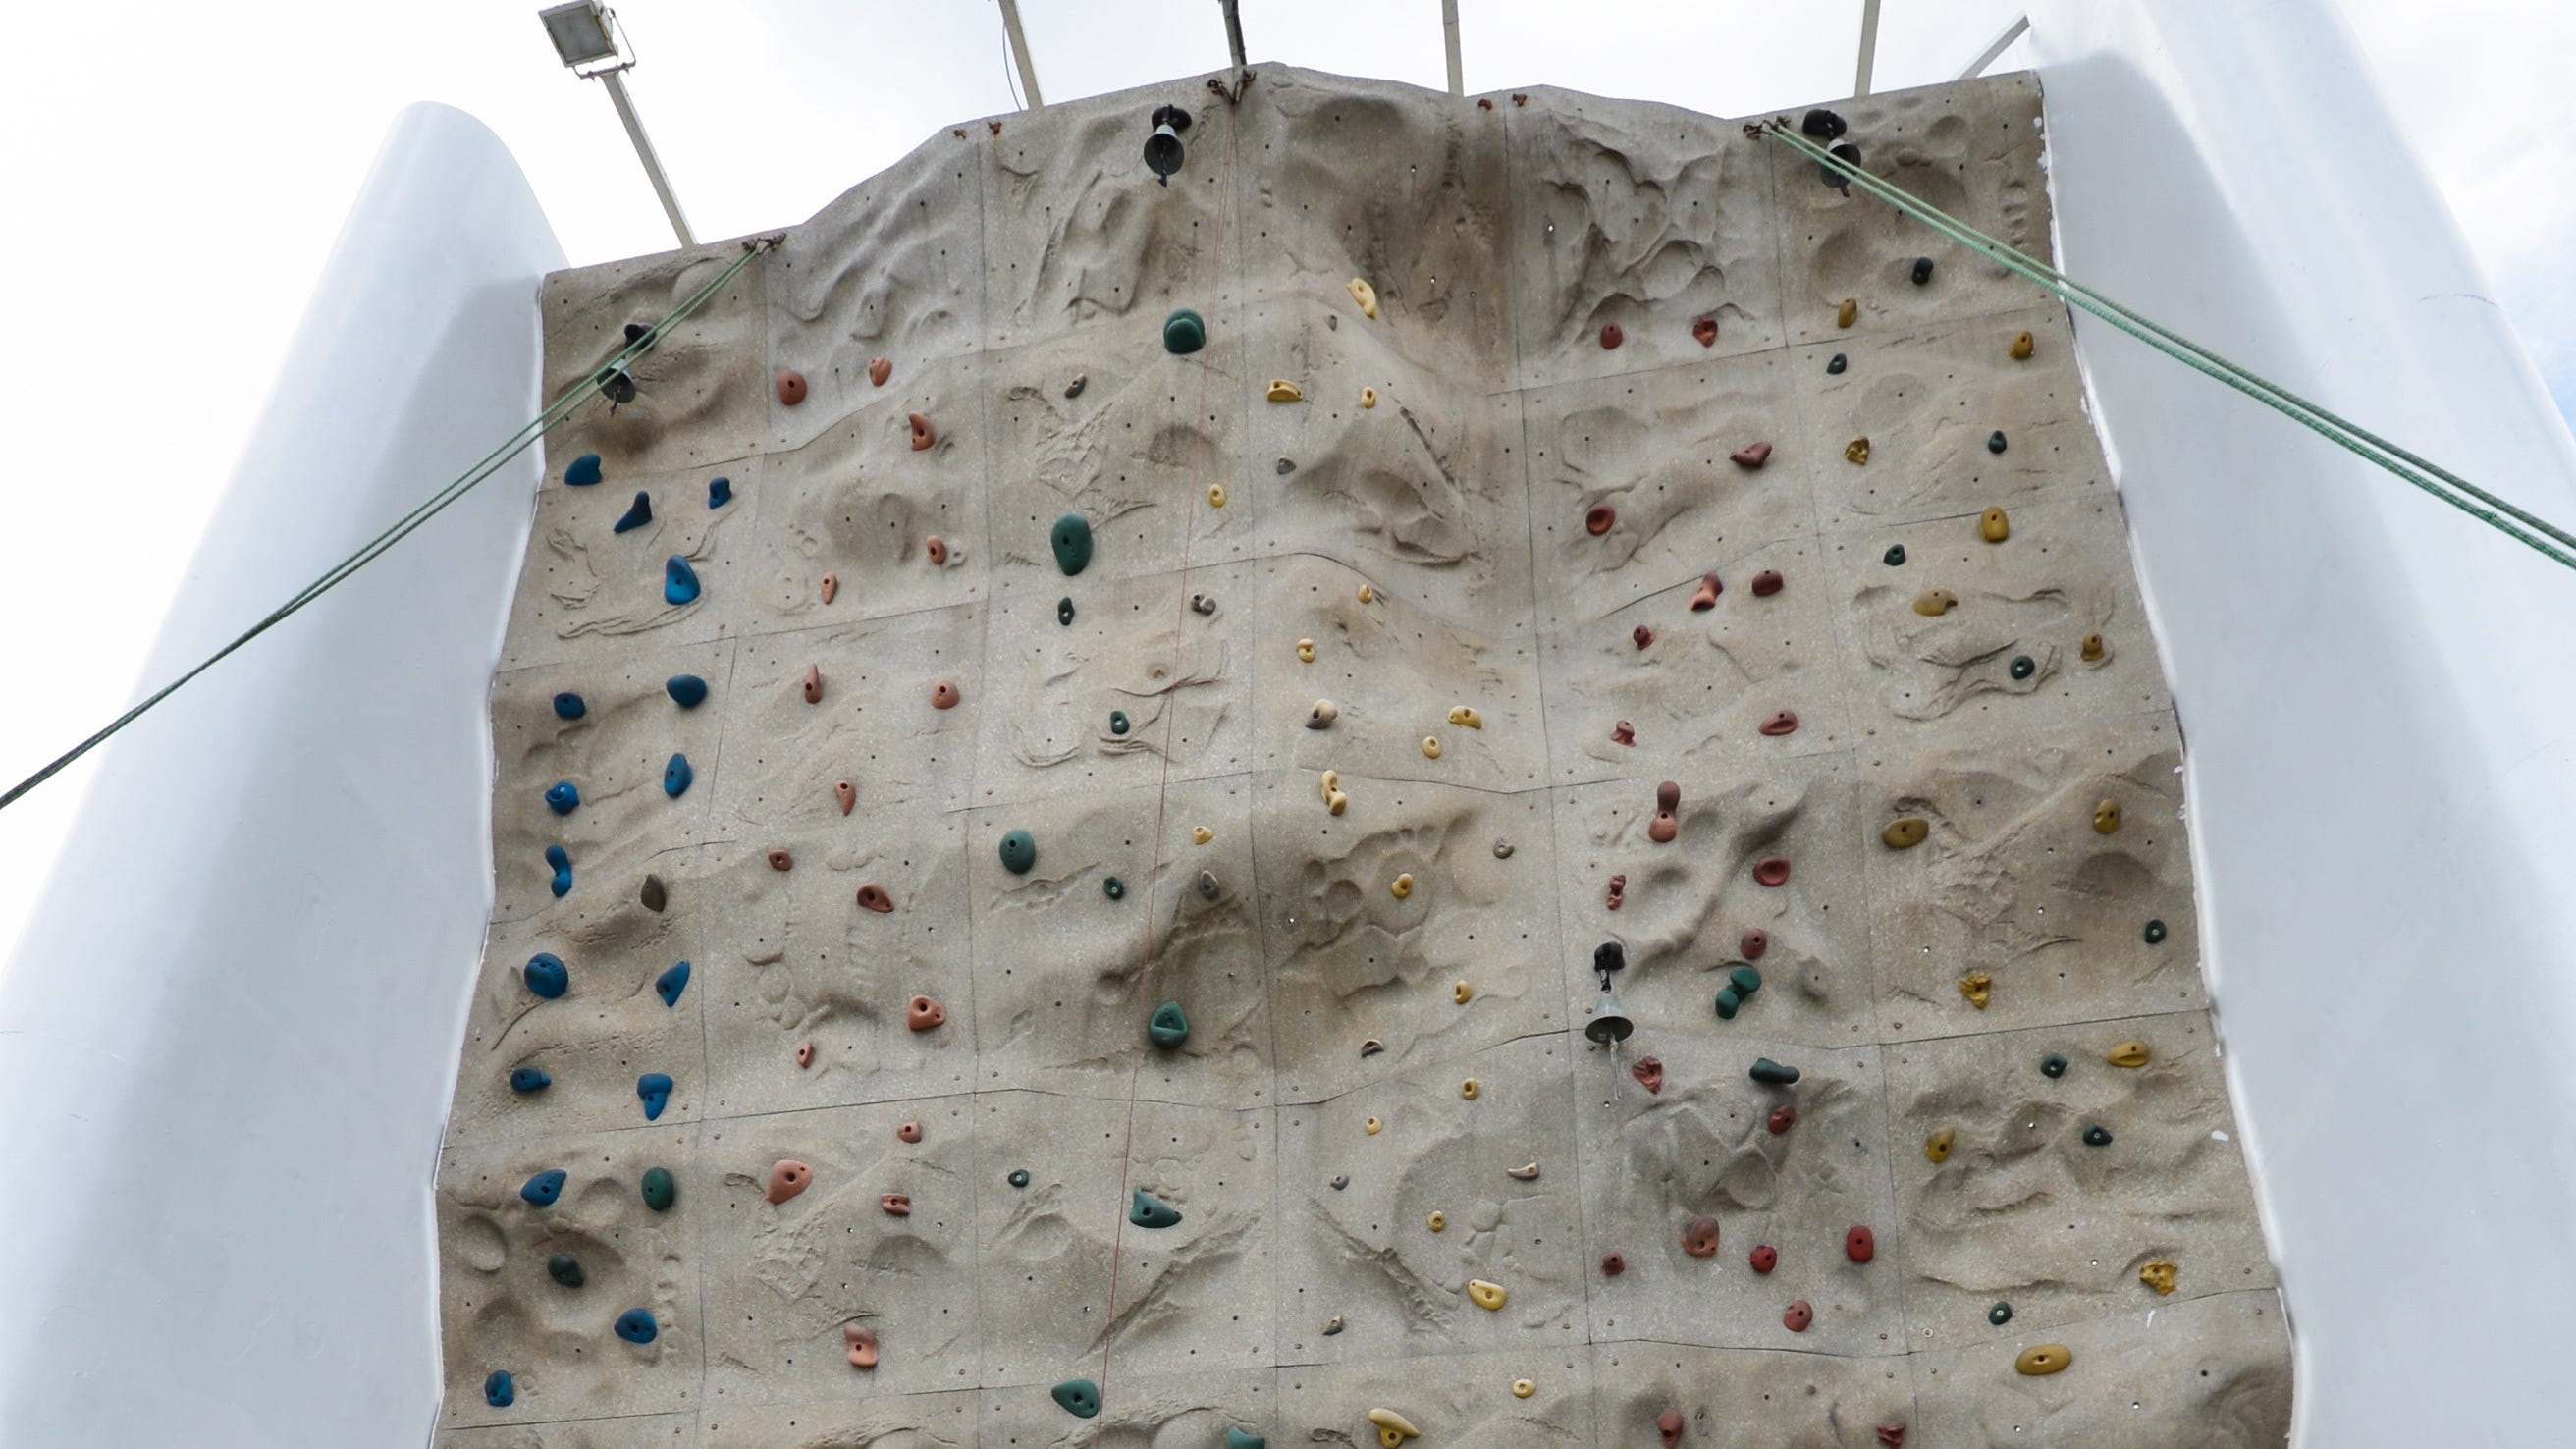 The top deck of Grandeur of the Seas also is home to a rock climbing wall, located at the very back of the vessel.